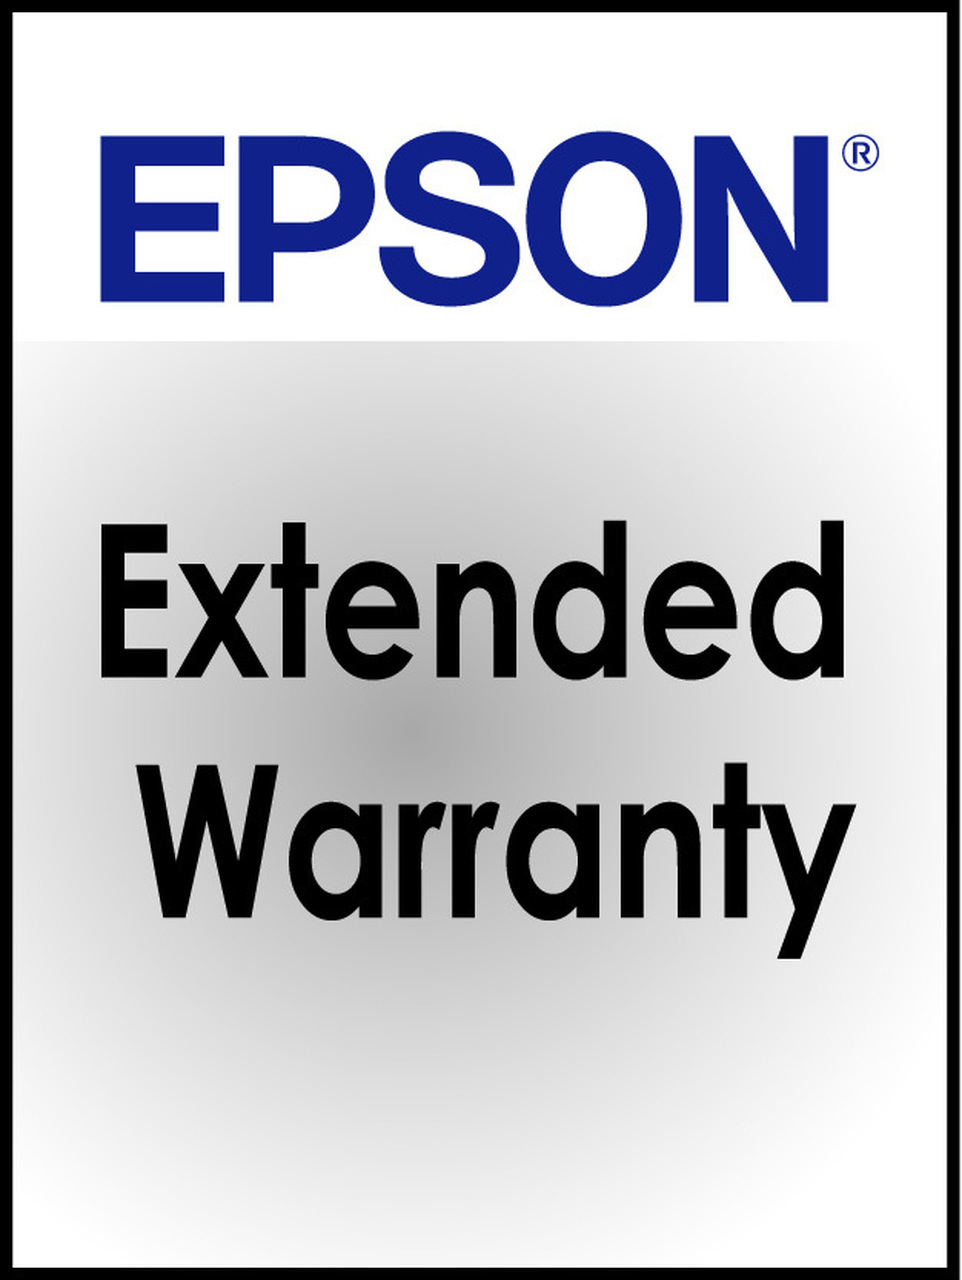 Epson TM-U, TM-H series overnight replacement coverage